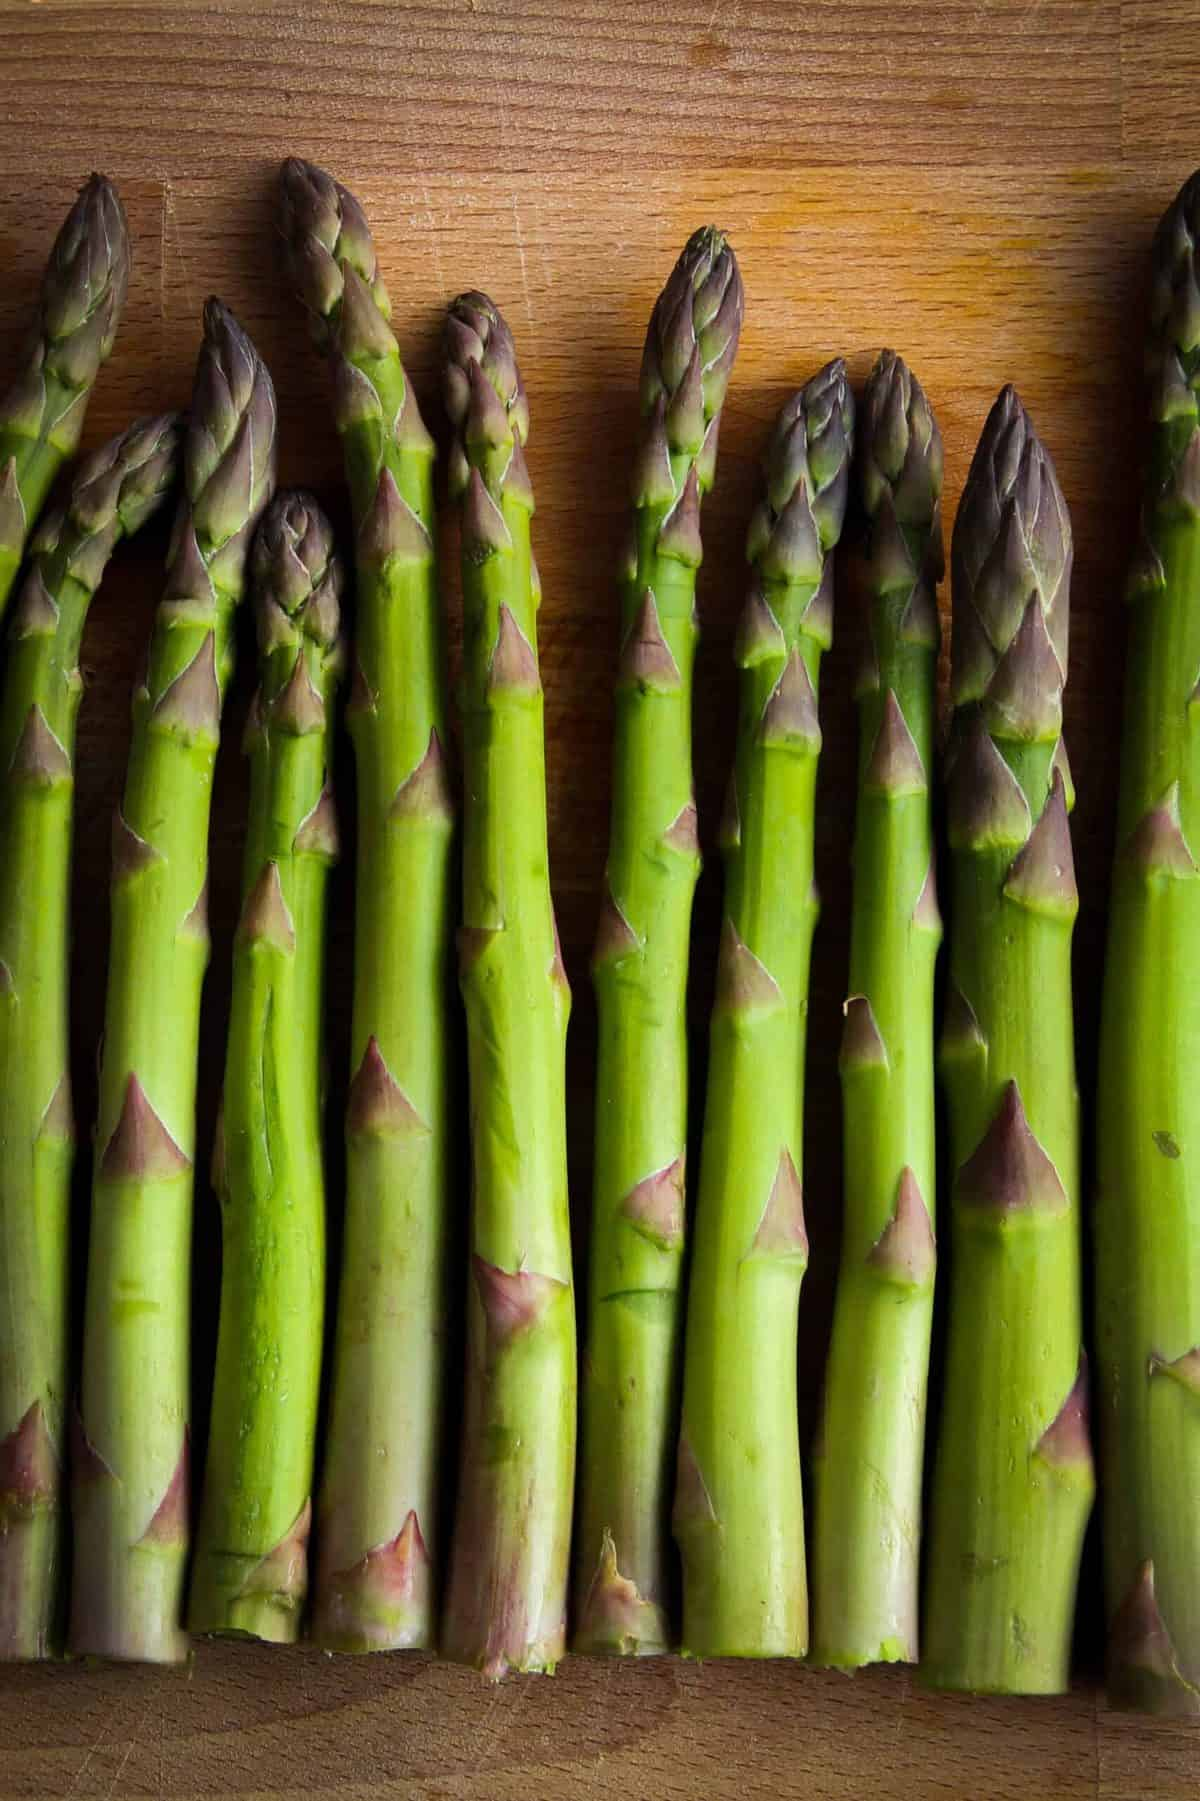 Bright green asparagus from the market.